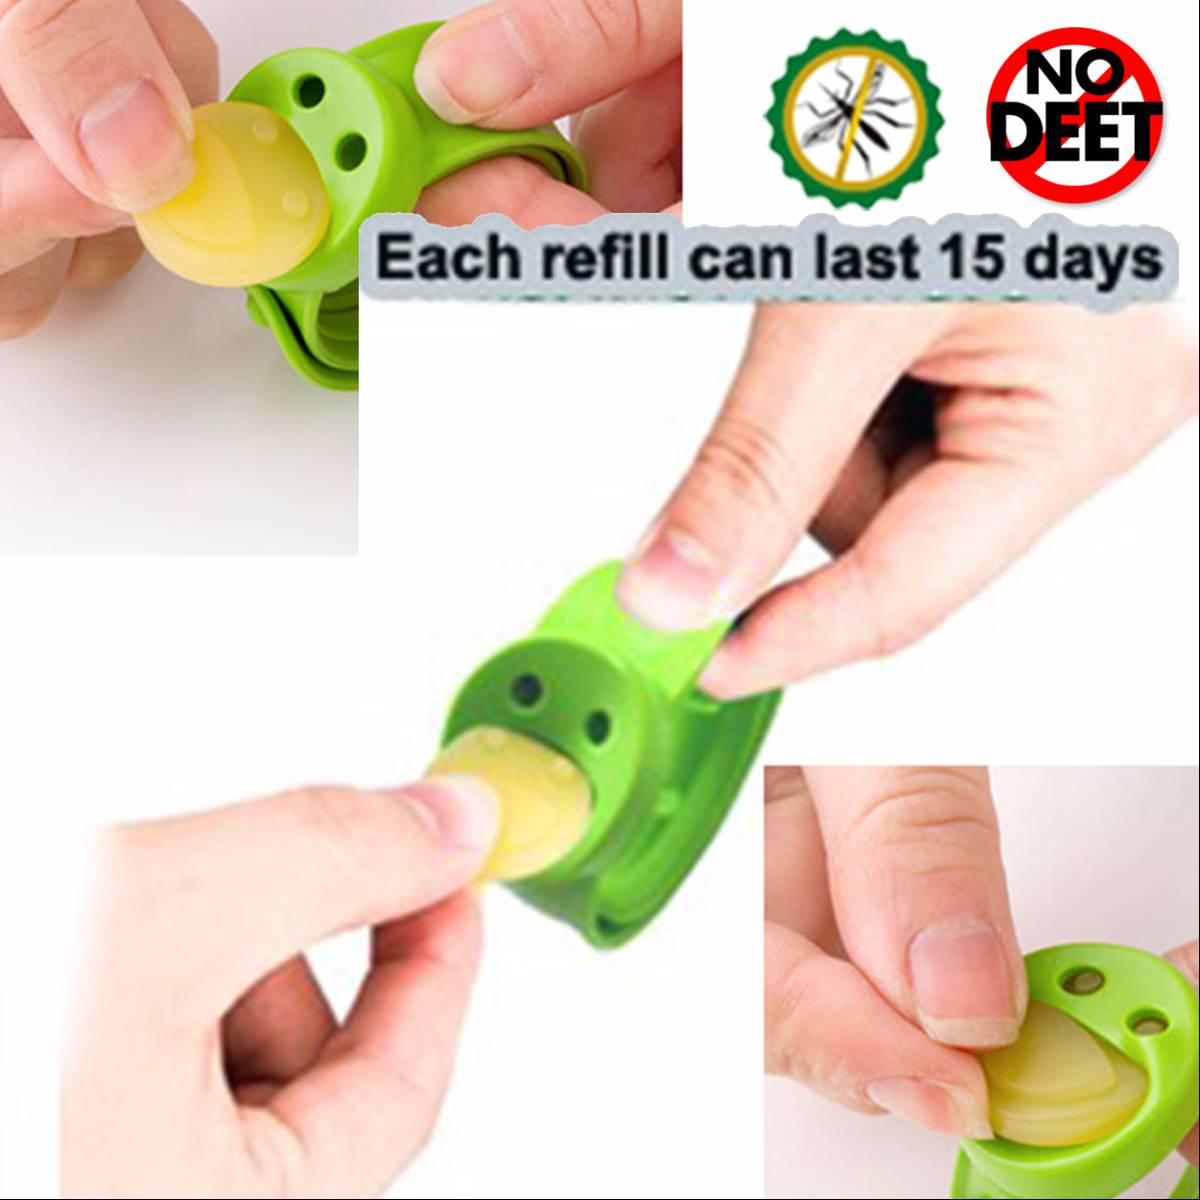 Babygo Refill Smiley Mosquito Repellent (isi Ulang Anti Nyamuk)2